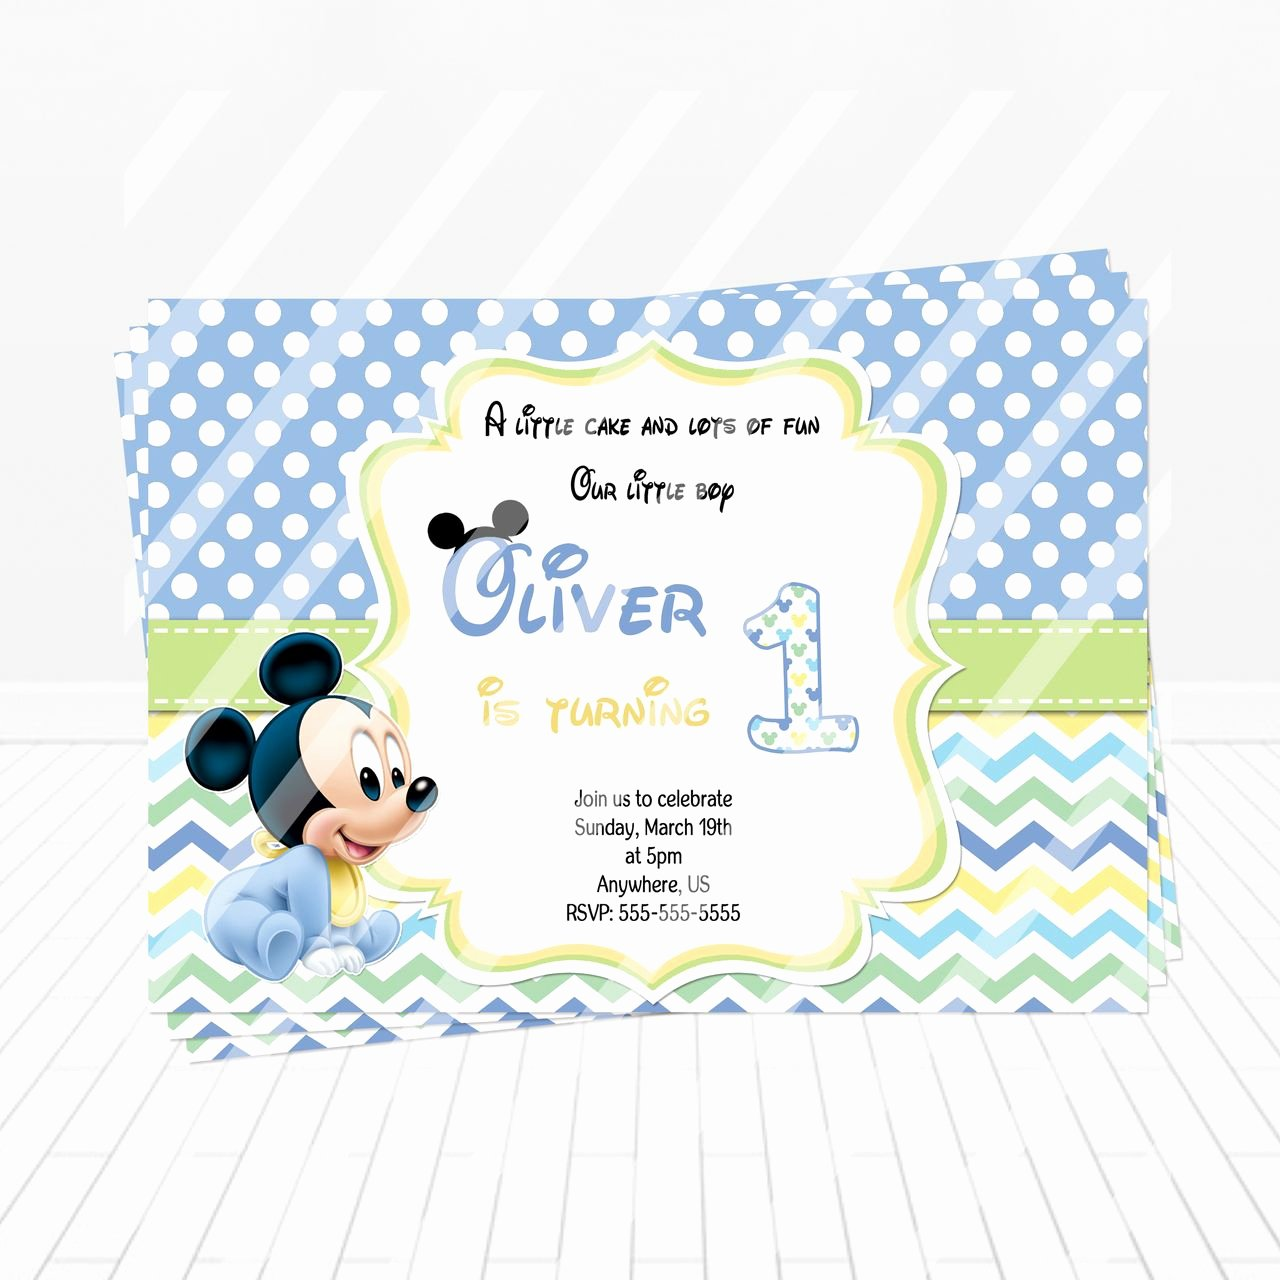 Baby Mickey Birthday Invitations Lovely Baby Mickey Birthday Invitation Partyexpressinvitations